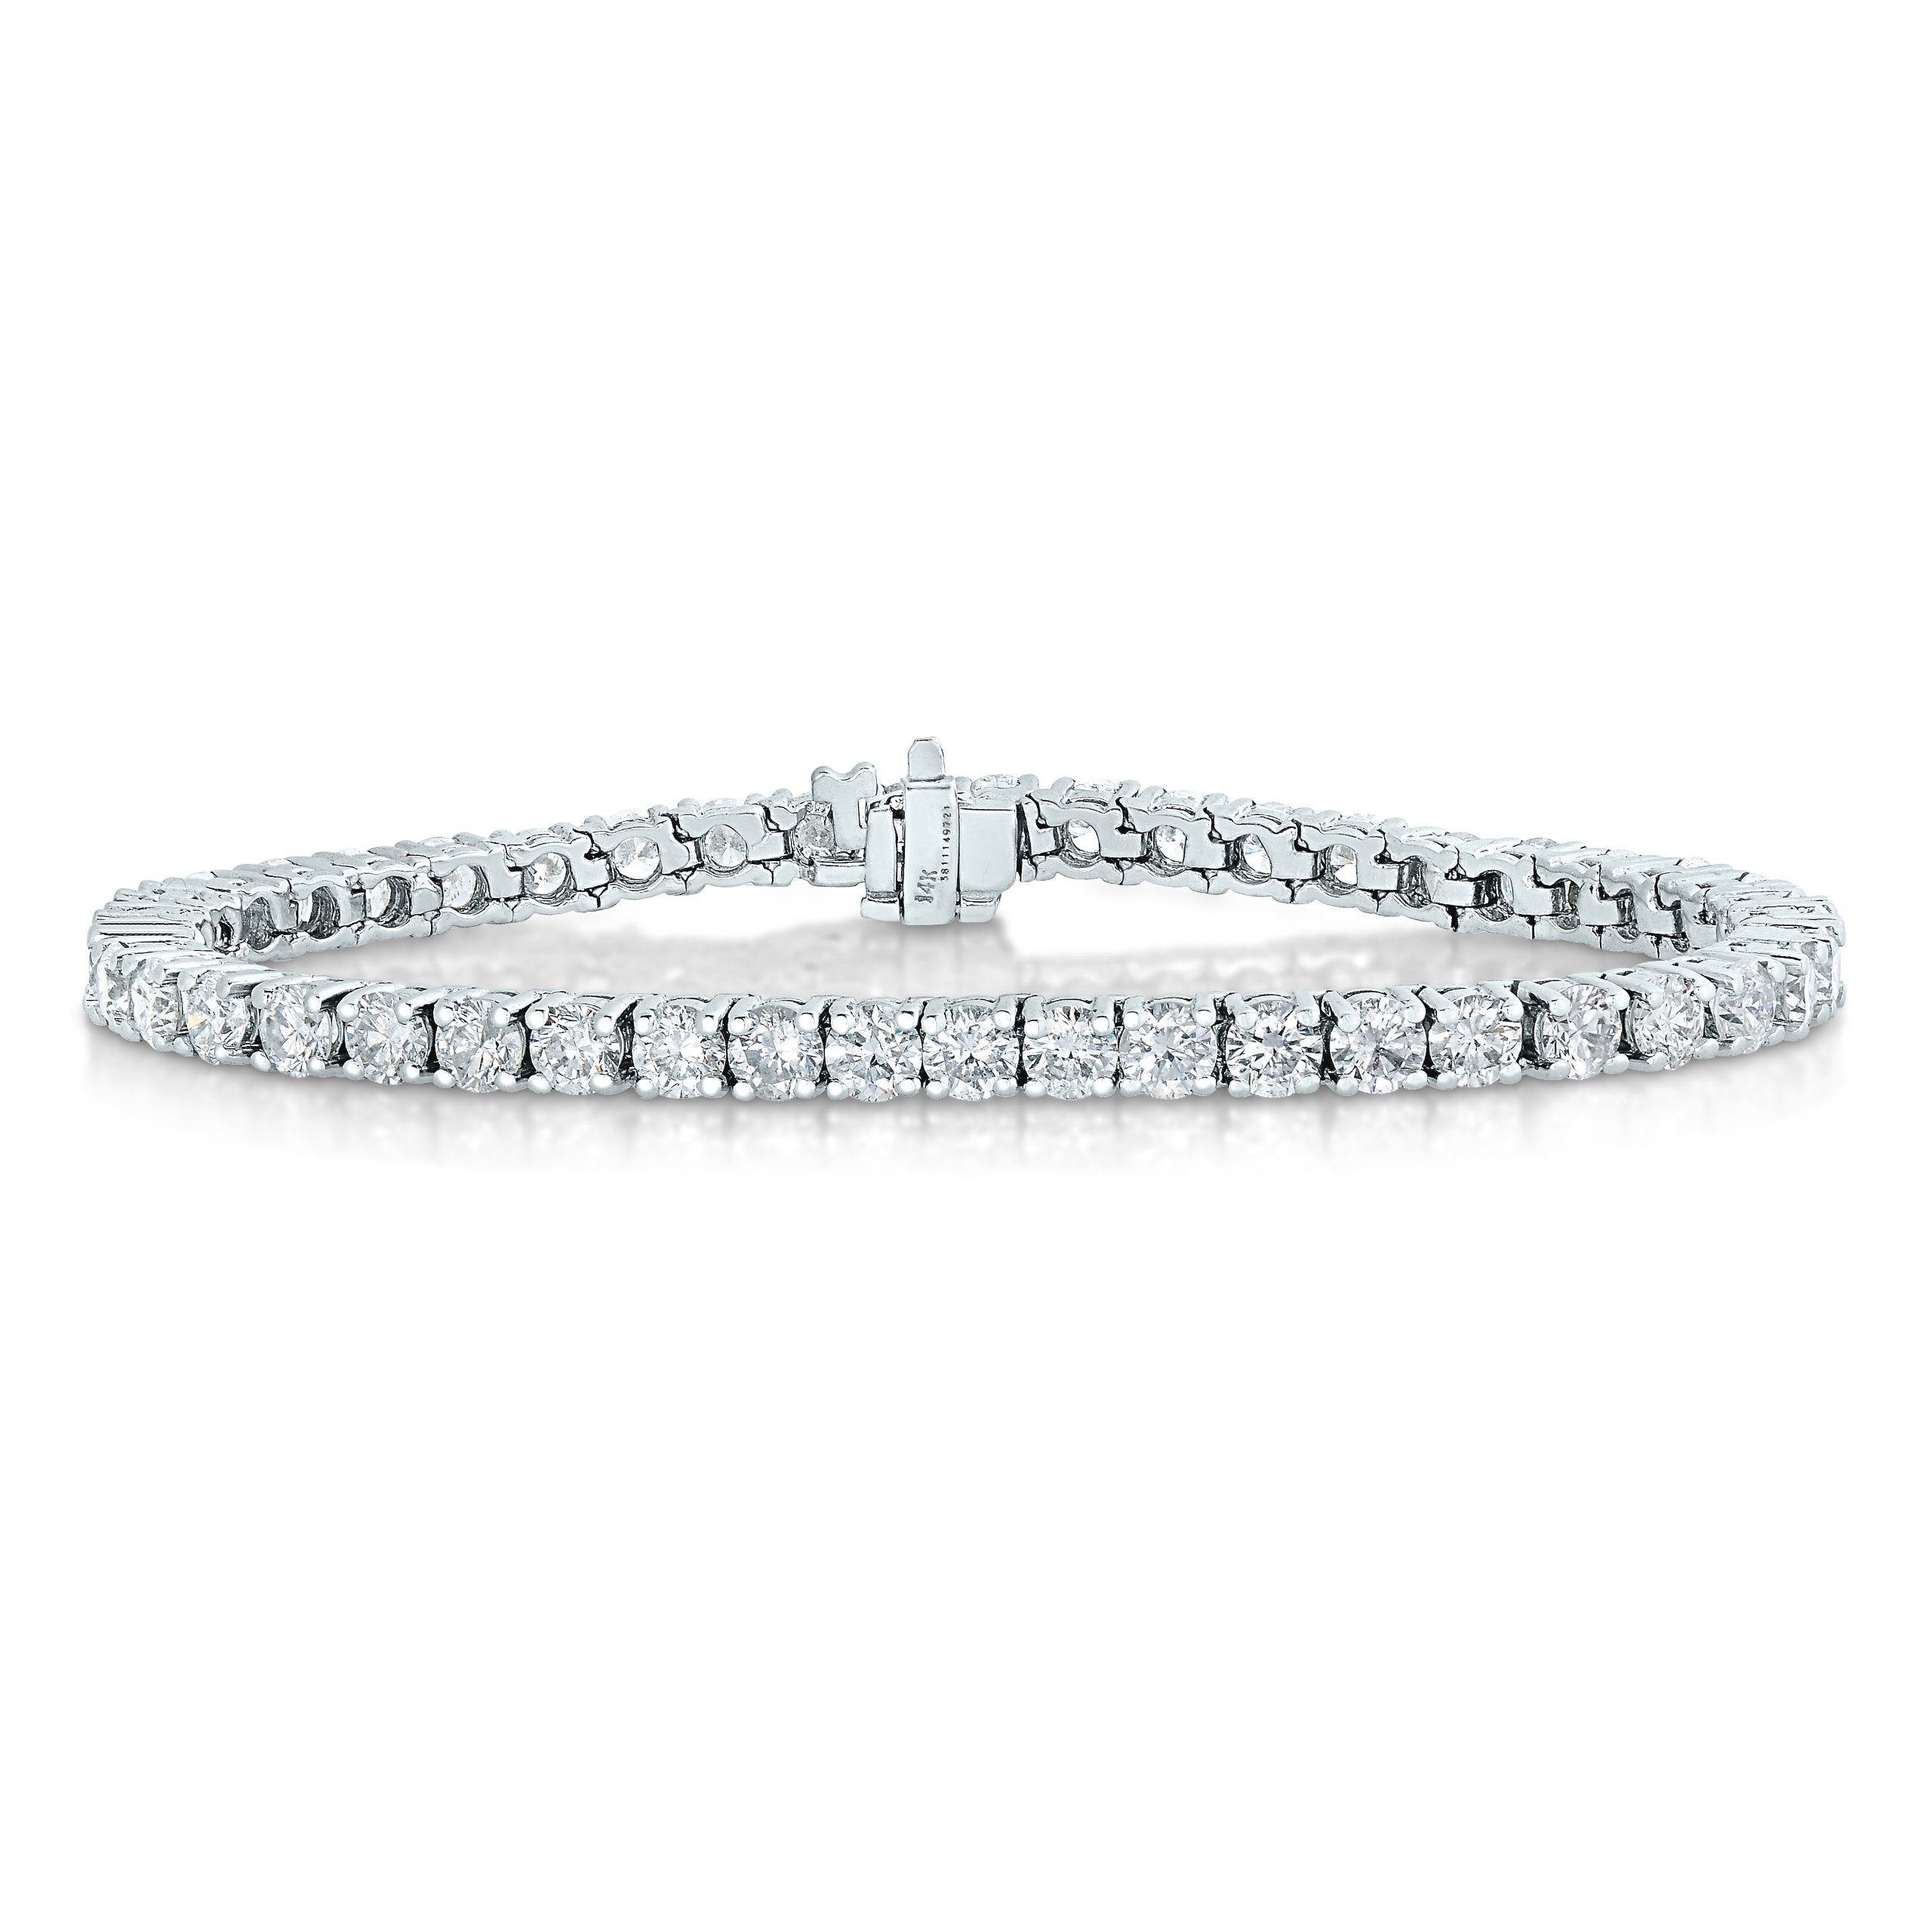 2 CT AGS Certified I1-I2 Clarity Diamond Bracelet 14K White Gold